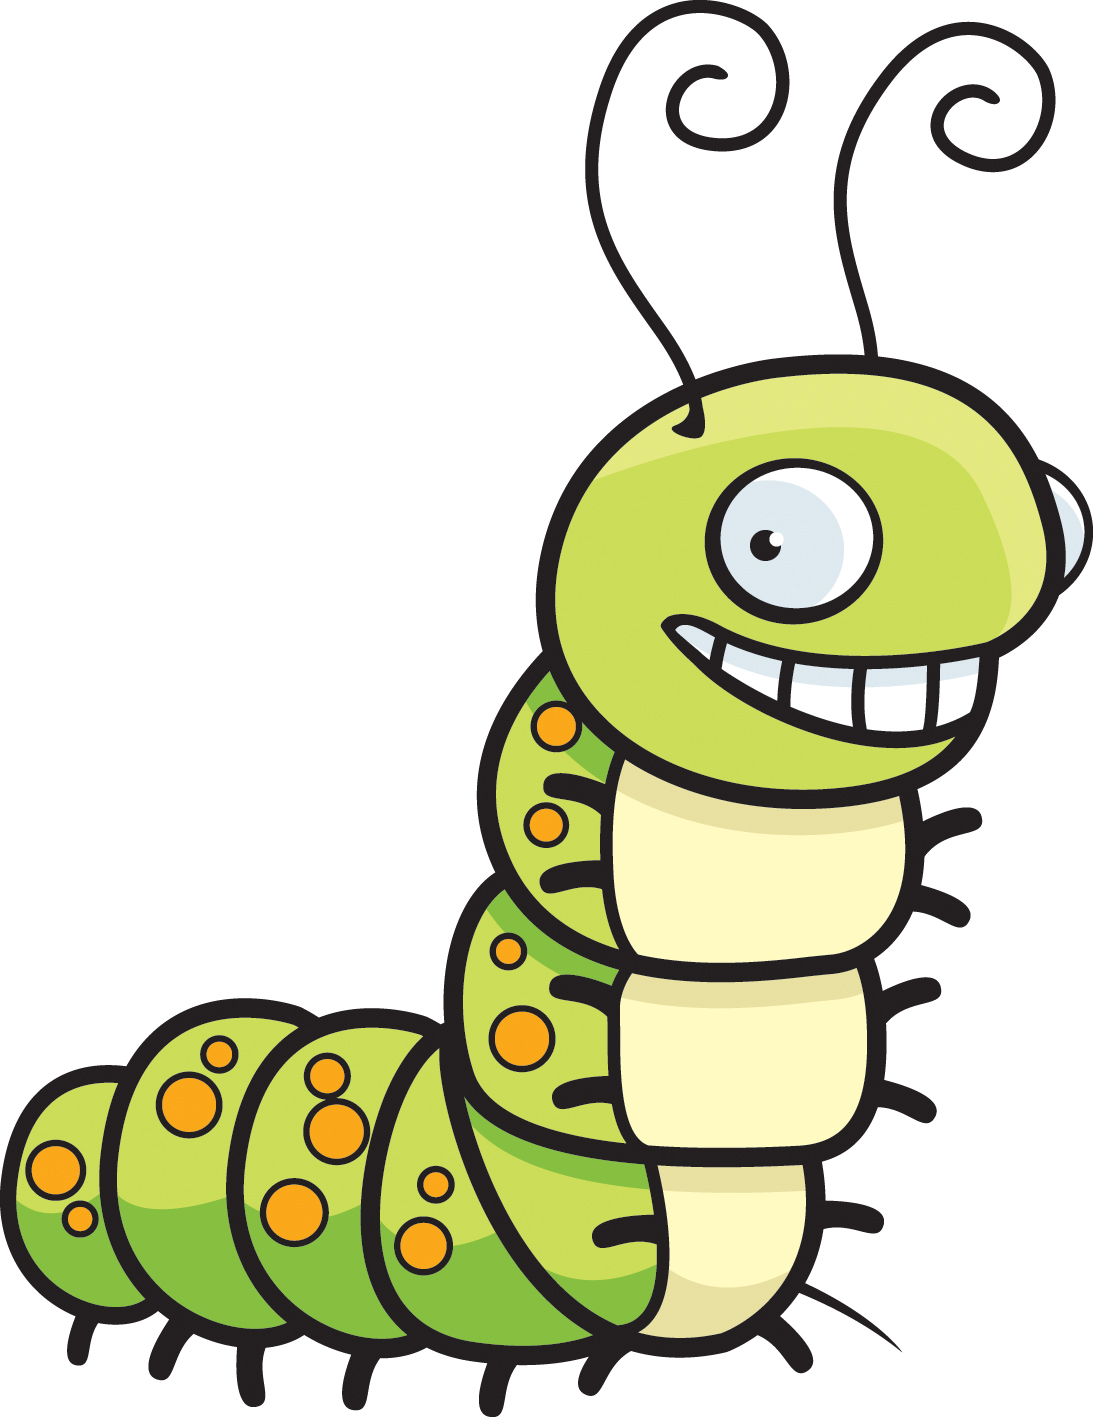 Caterpillar Clipart Black And White Free Clipart